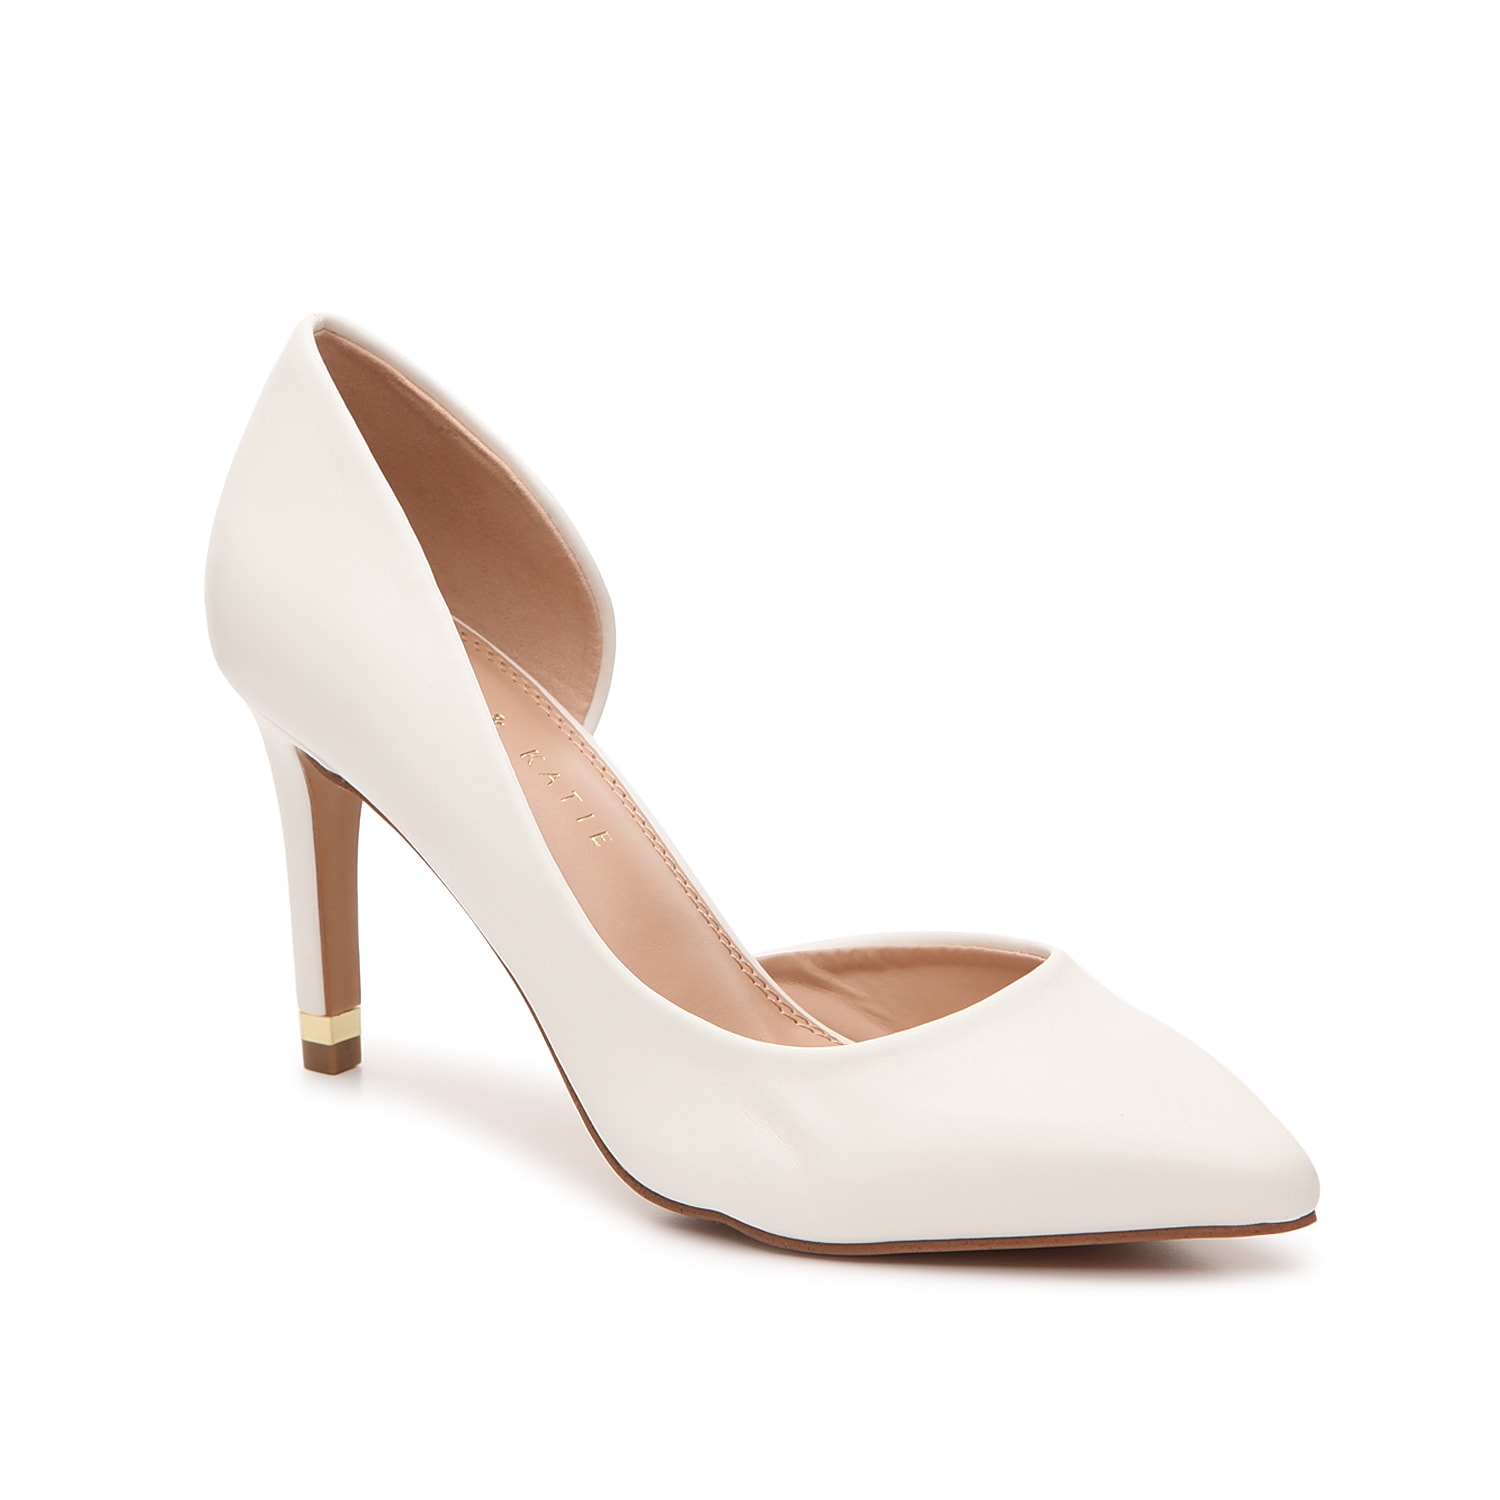 The Driella pump from Kelly & Katie will be a flawless and fabulous find for your shoe collection. The d\\\'Orsay styling and clean, pointed toe will give your ensemble a high-fashion look!